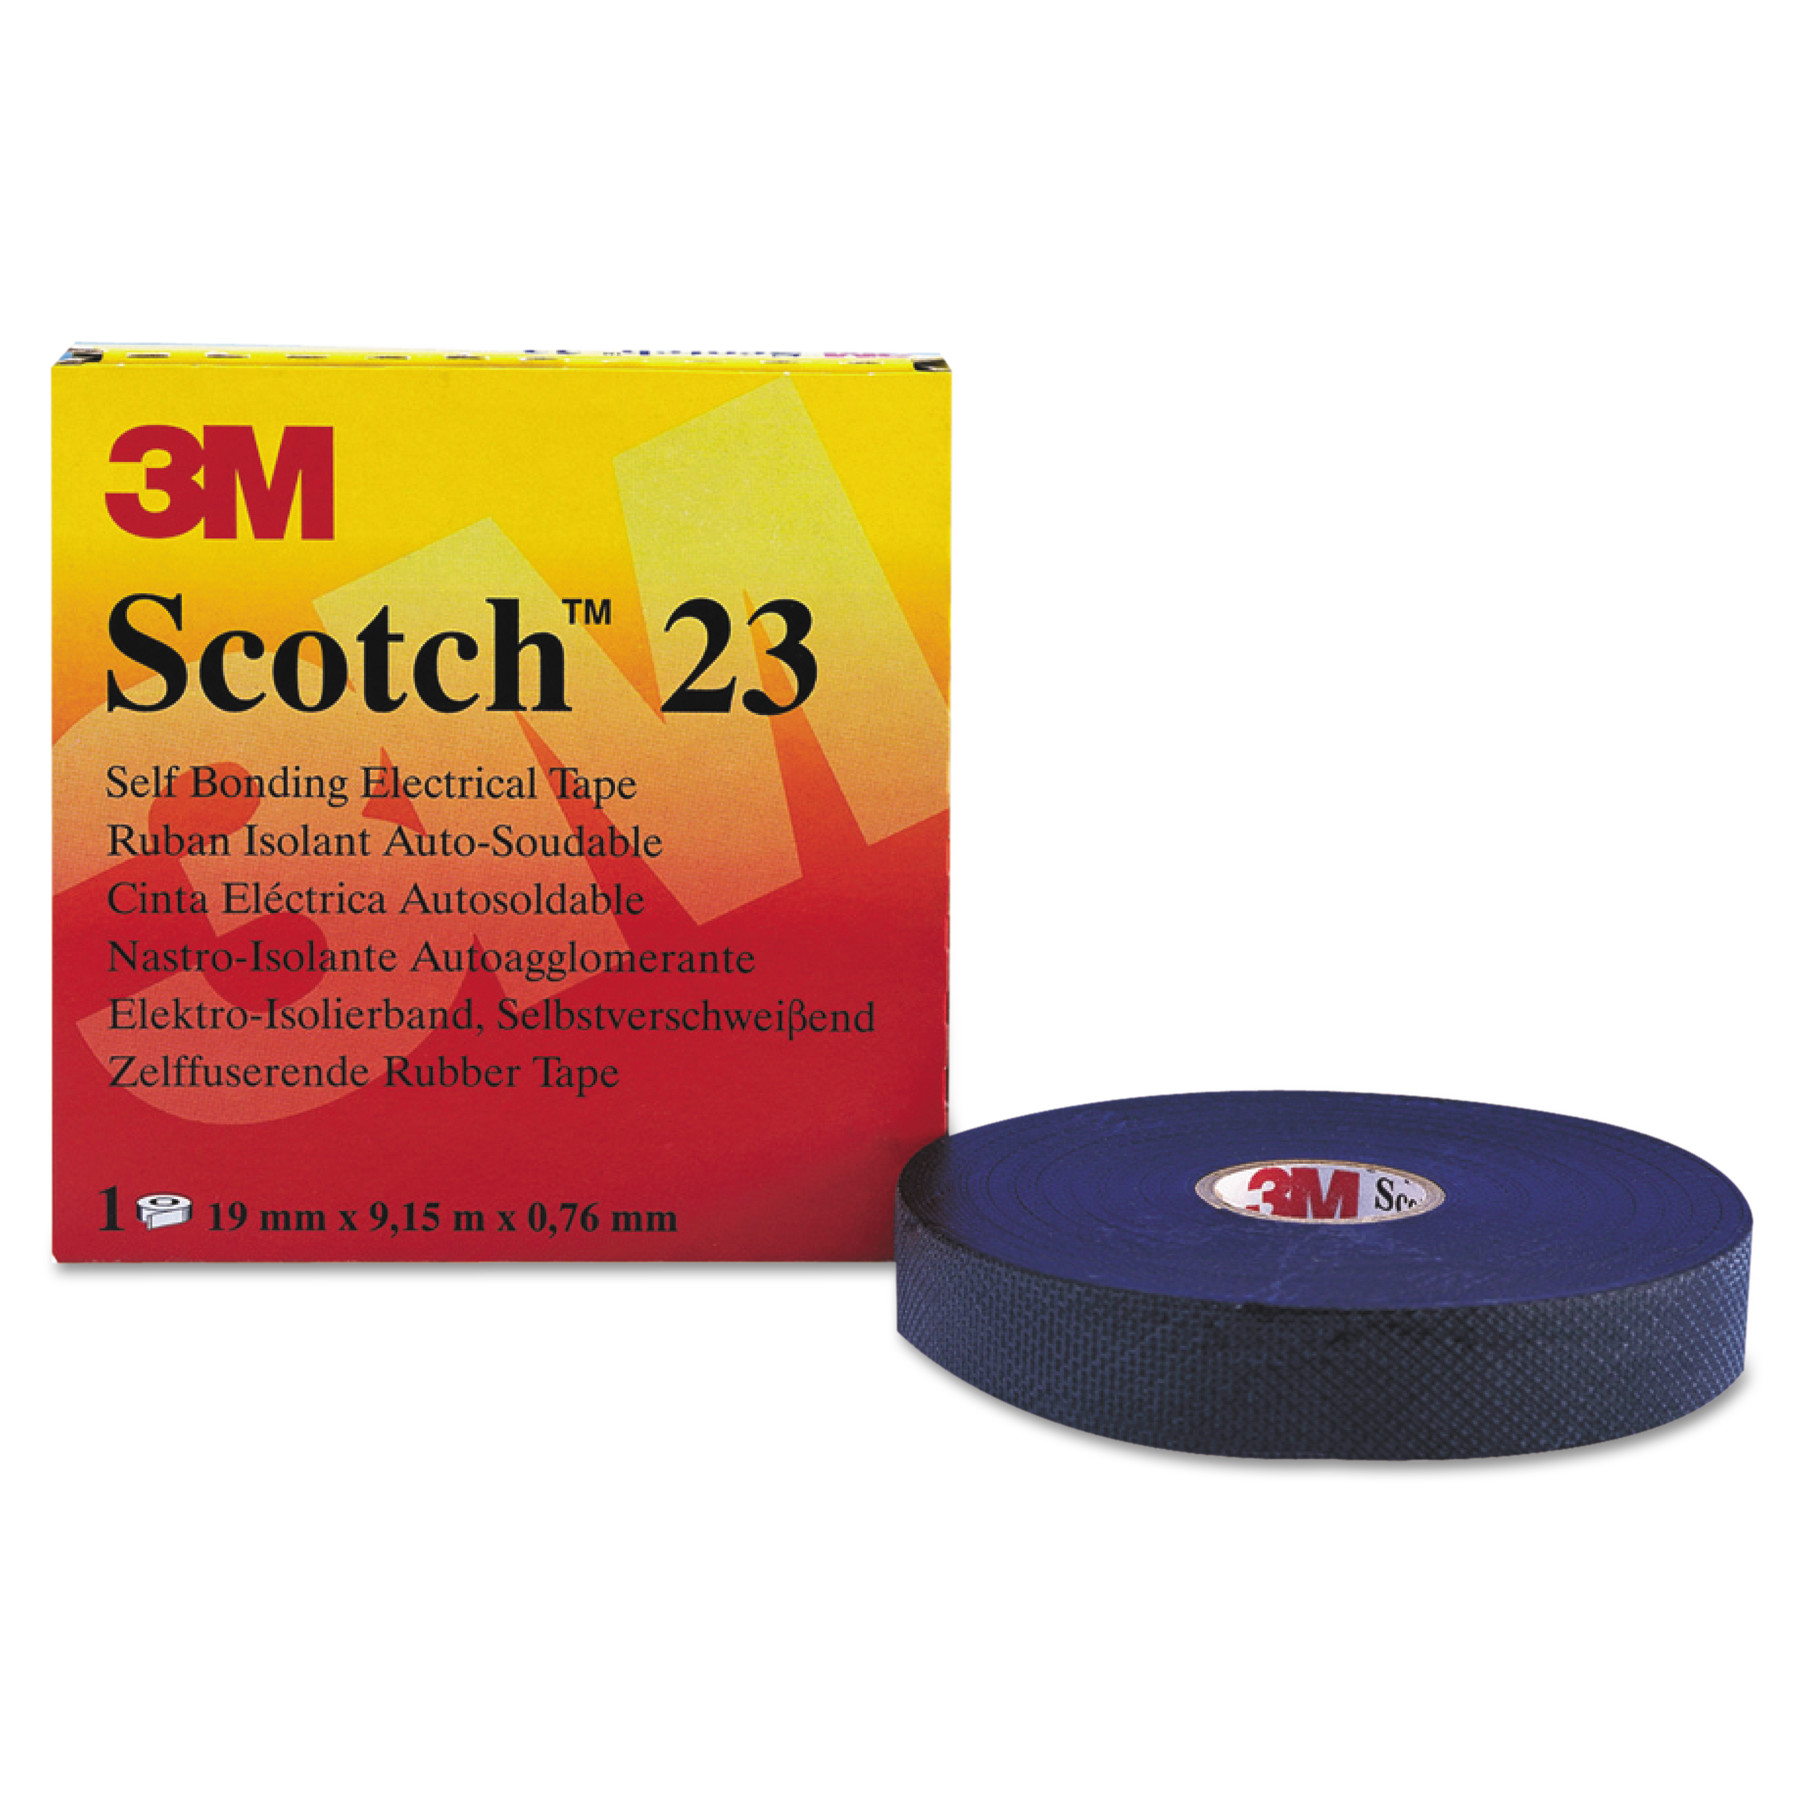 "3M Scotch 23 Rubber Splicing Tape, 3/4"" x 30ft -MMM15025"